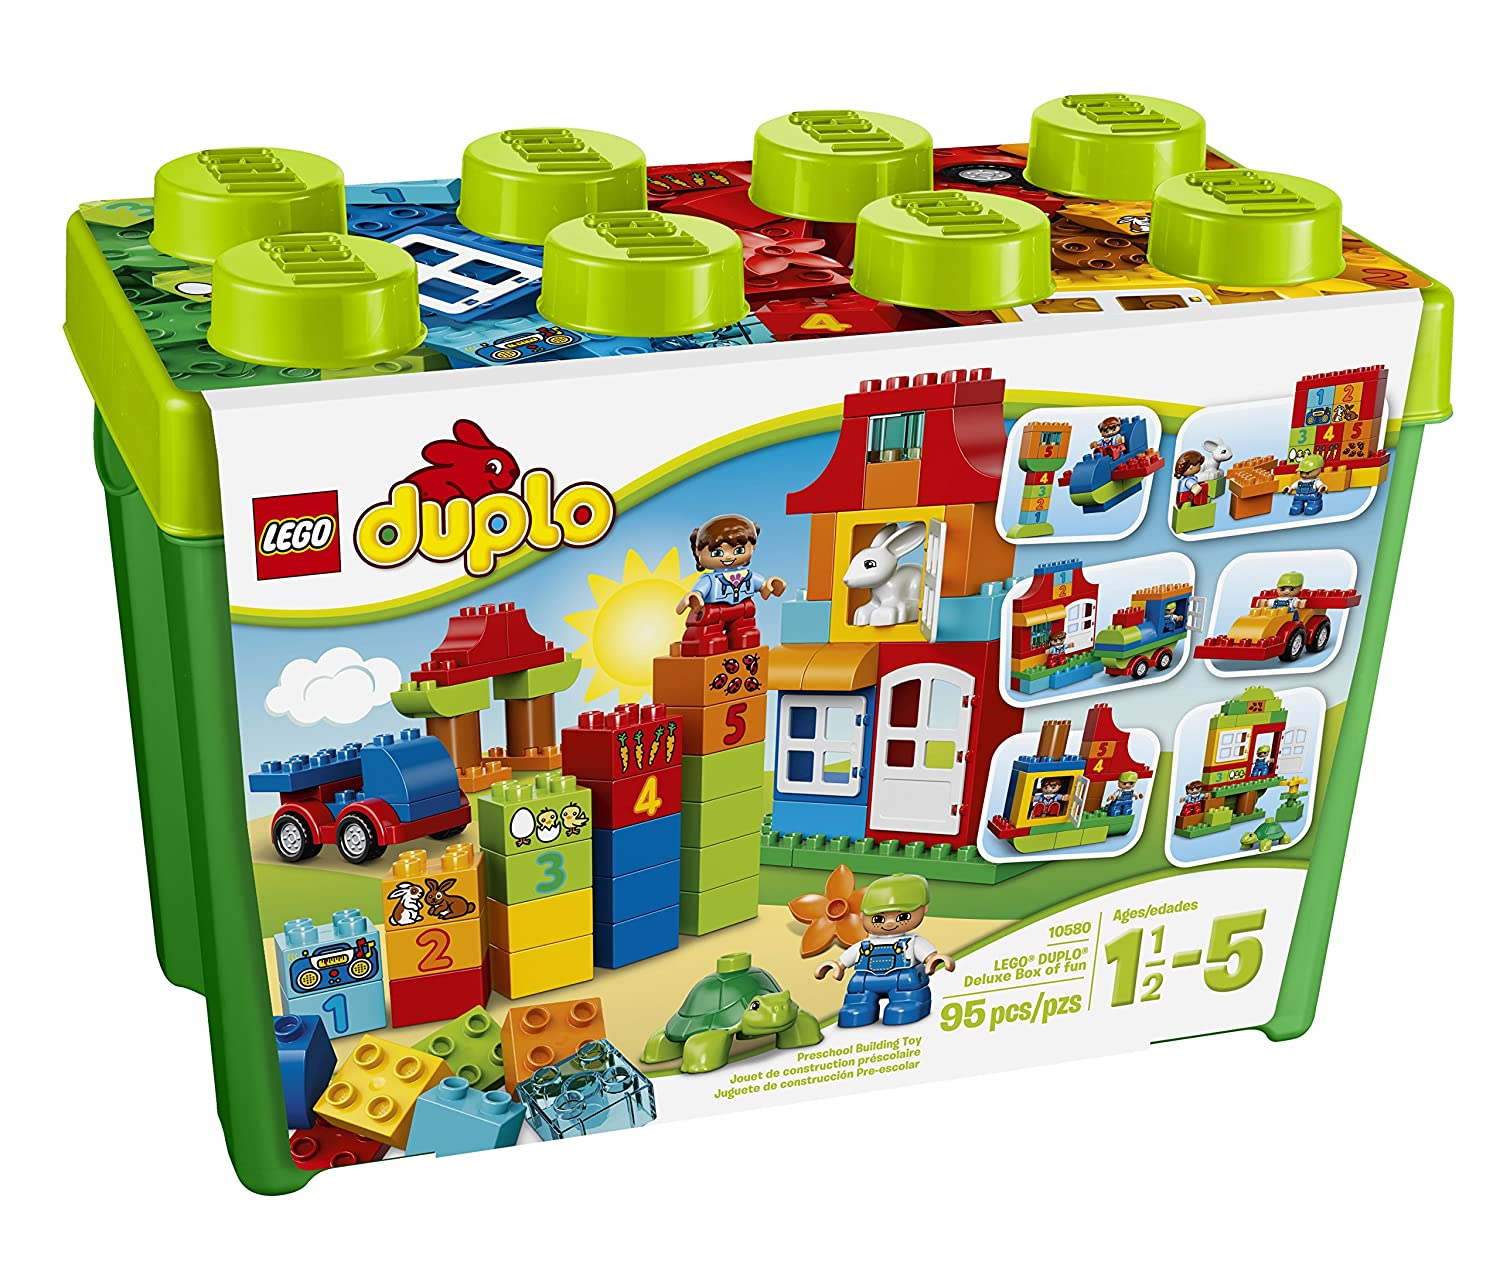 LEGO DUPLO Creative Play My First Box of Fun 10580, Preschool, Pre-Kindergarten Large Building Block Toys for Toddlers